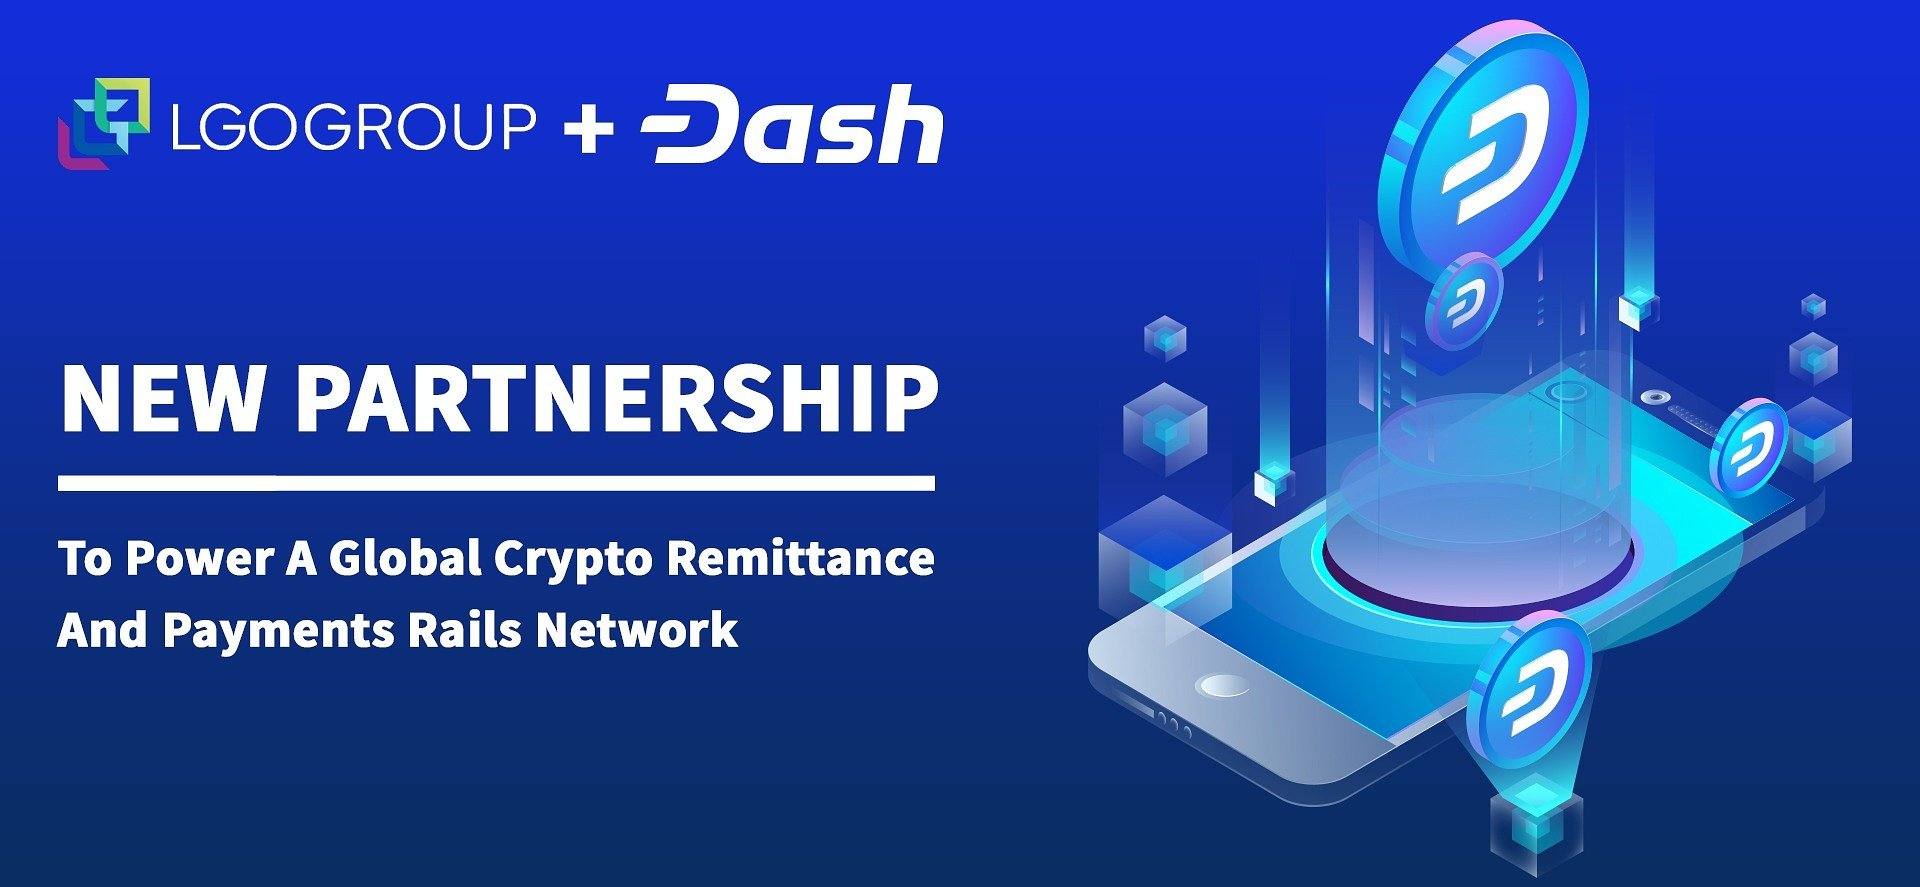 Institutional Platform LGO To Provide OTC Liquidity To The Dash Network